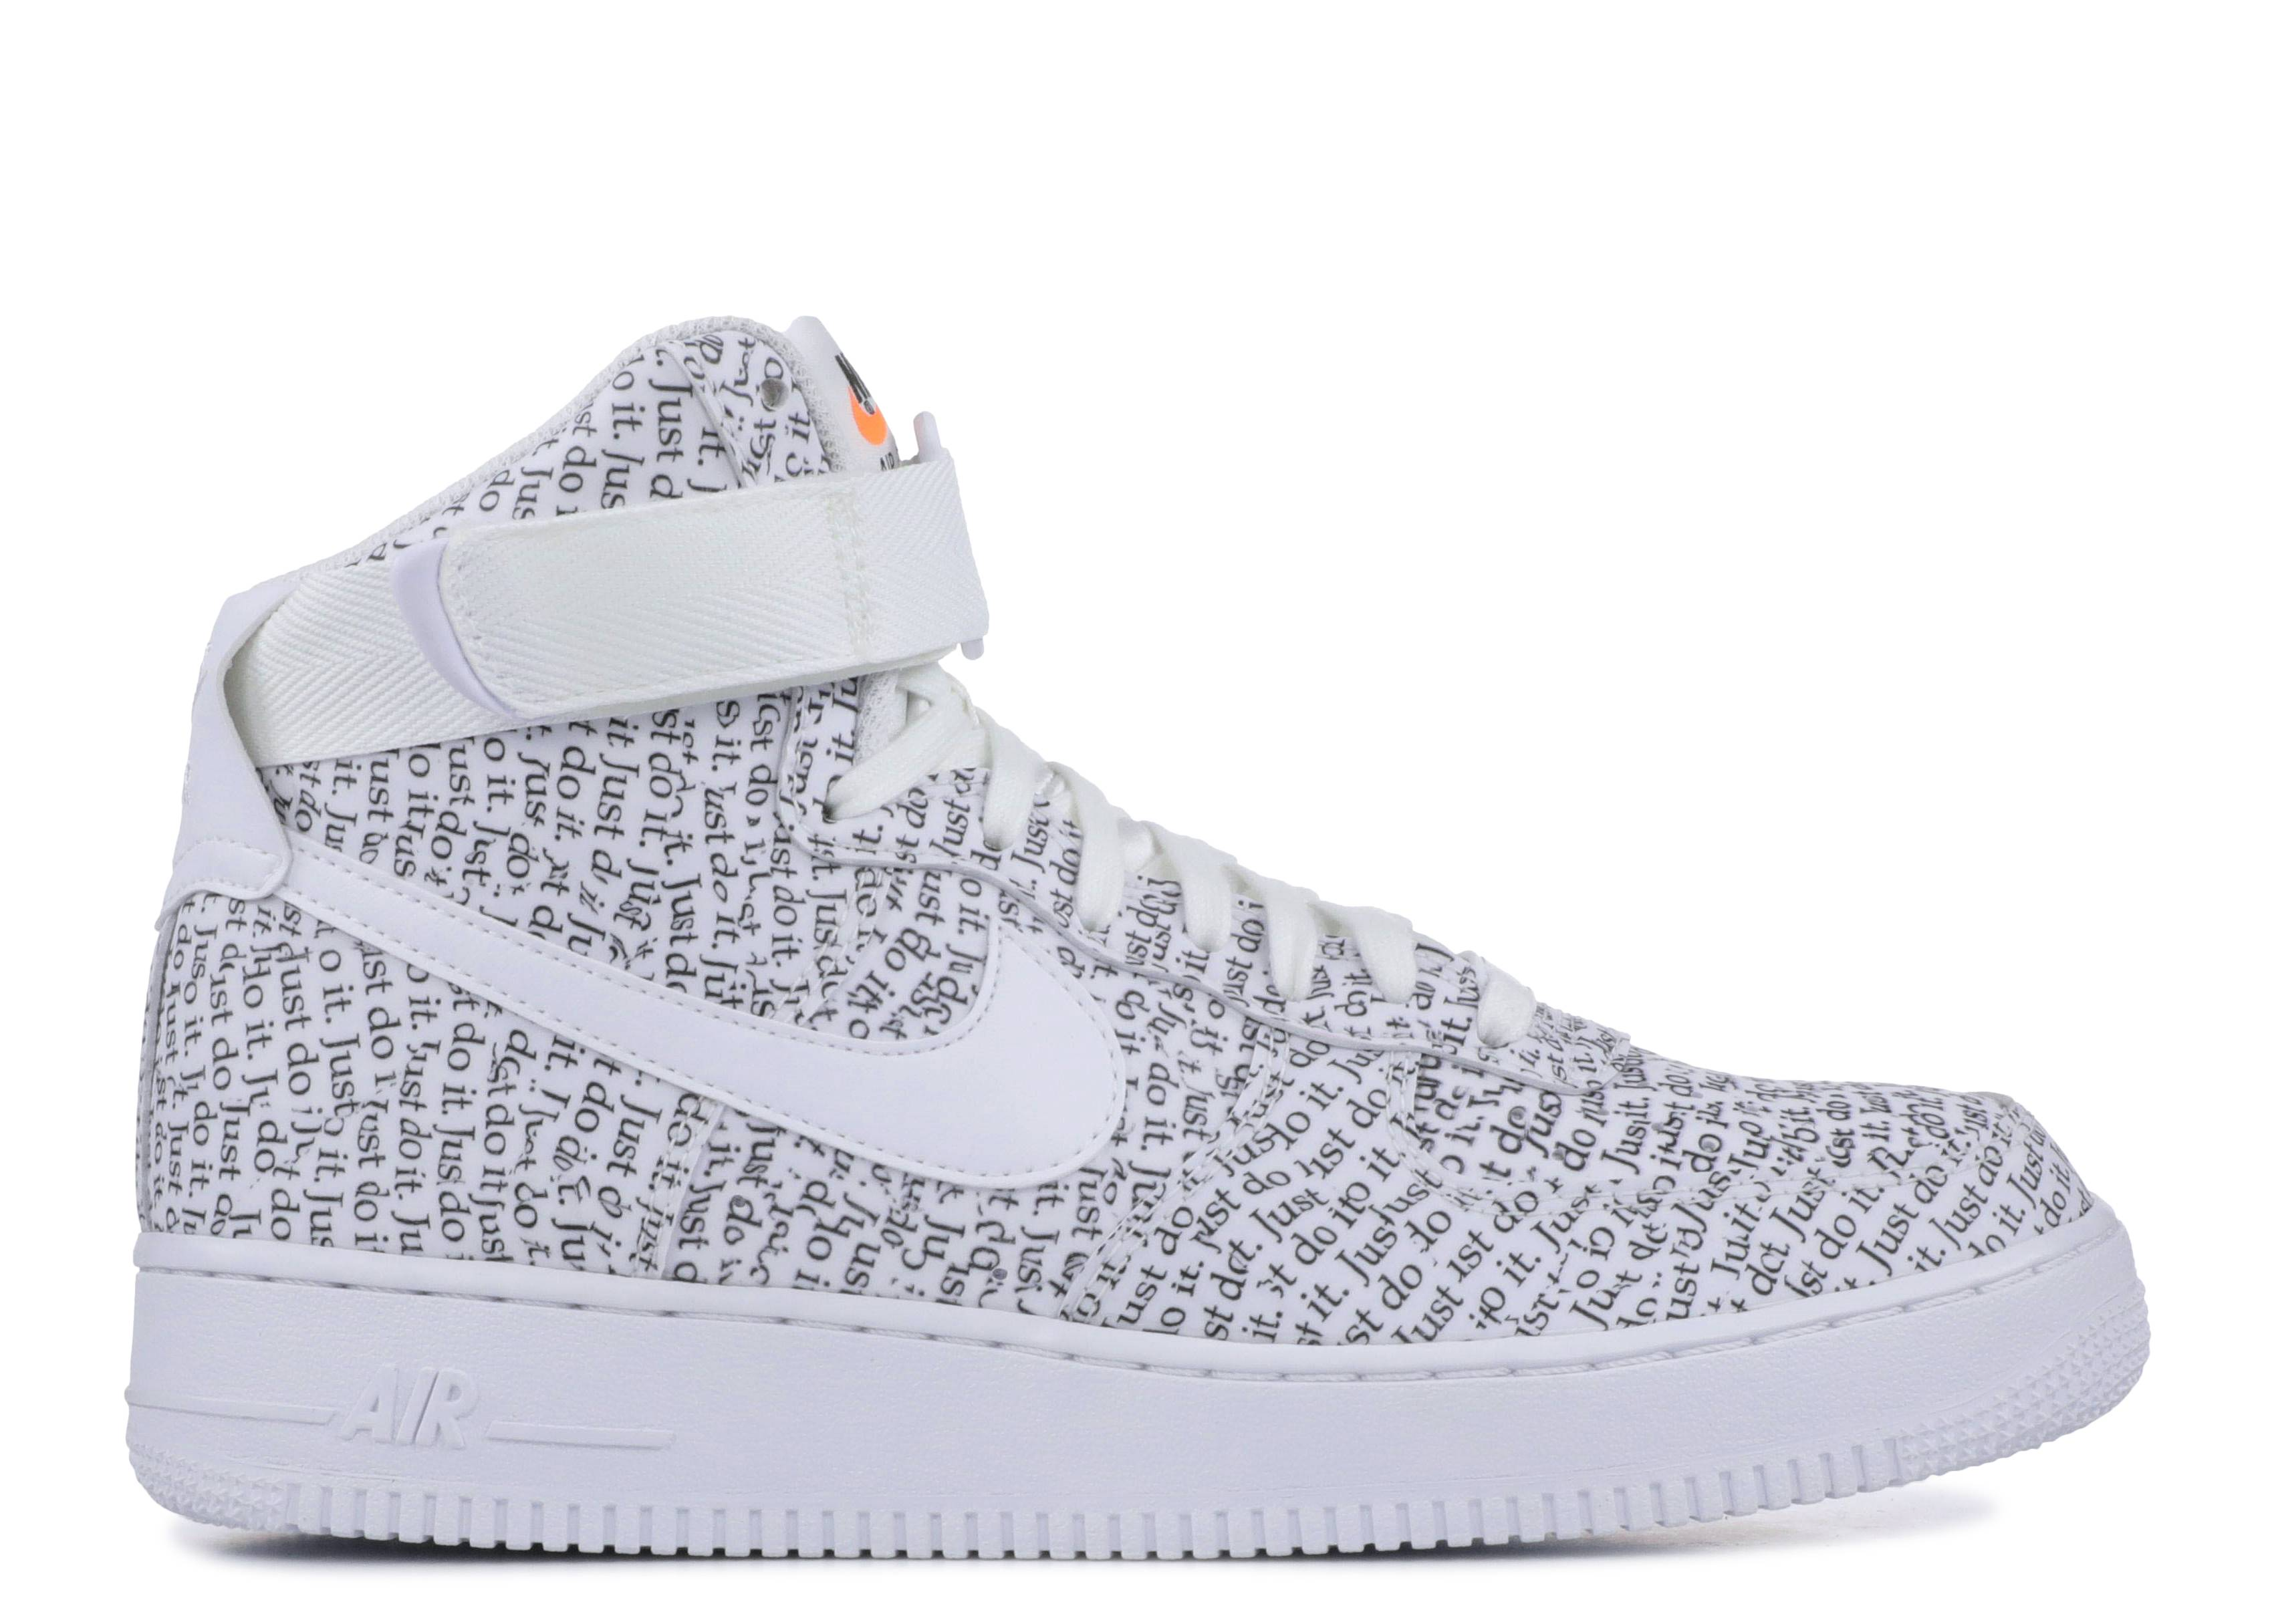 sale retailer d31c2 d0dc5 Air Force 1 High '07 LV8 'Just Do It'